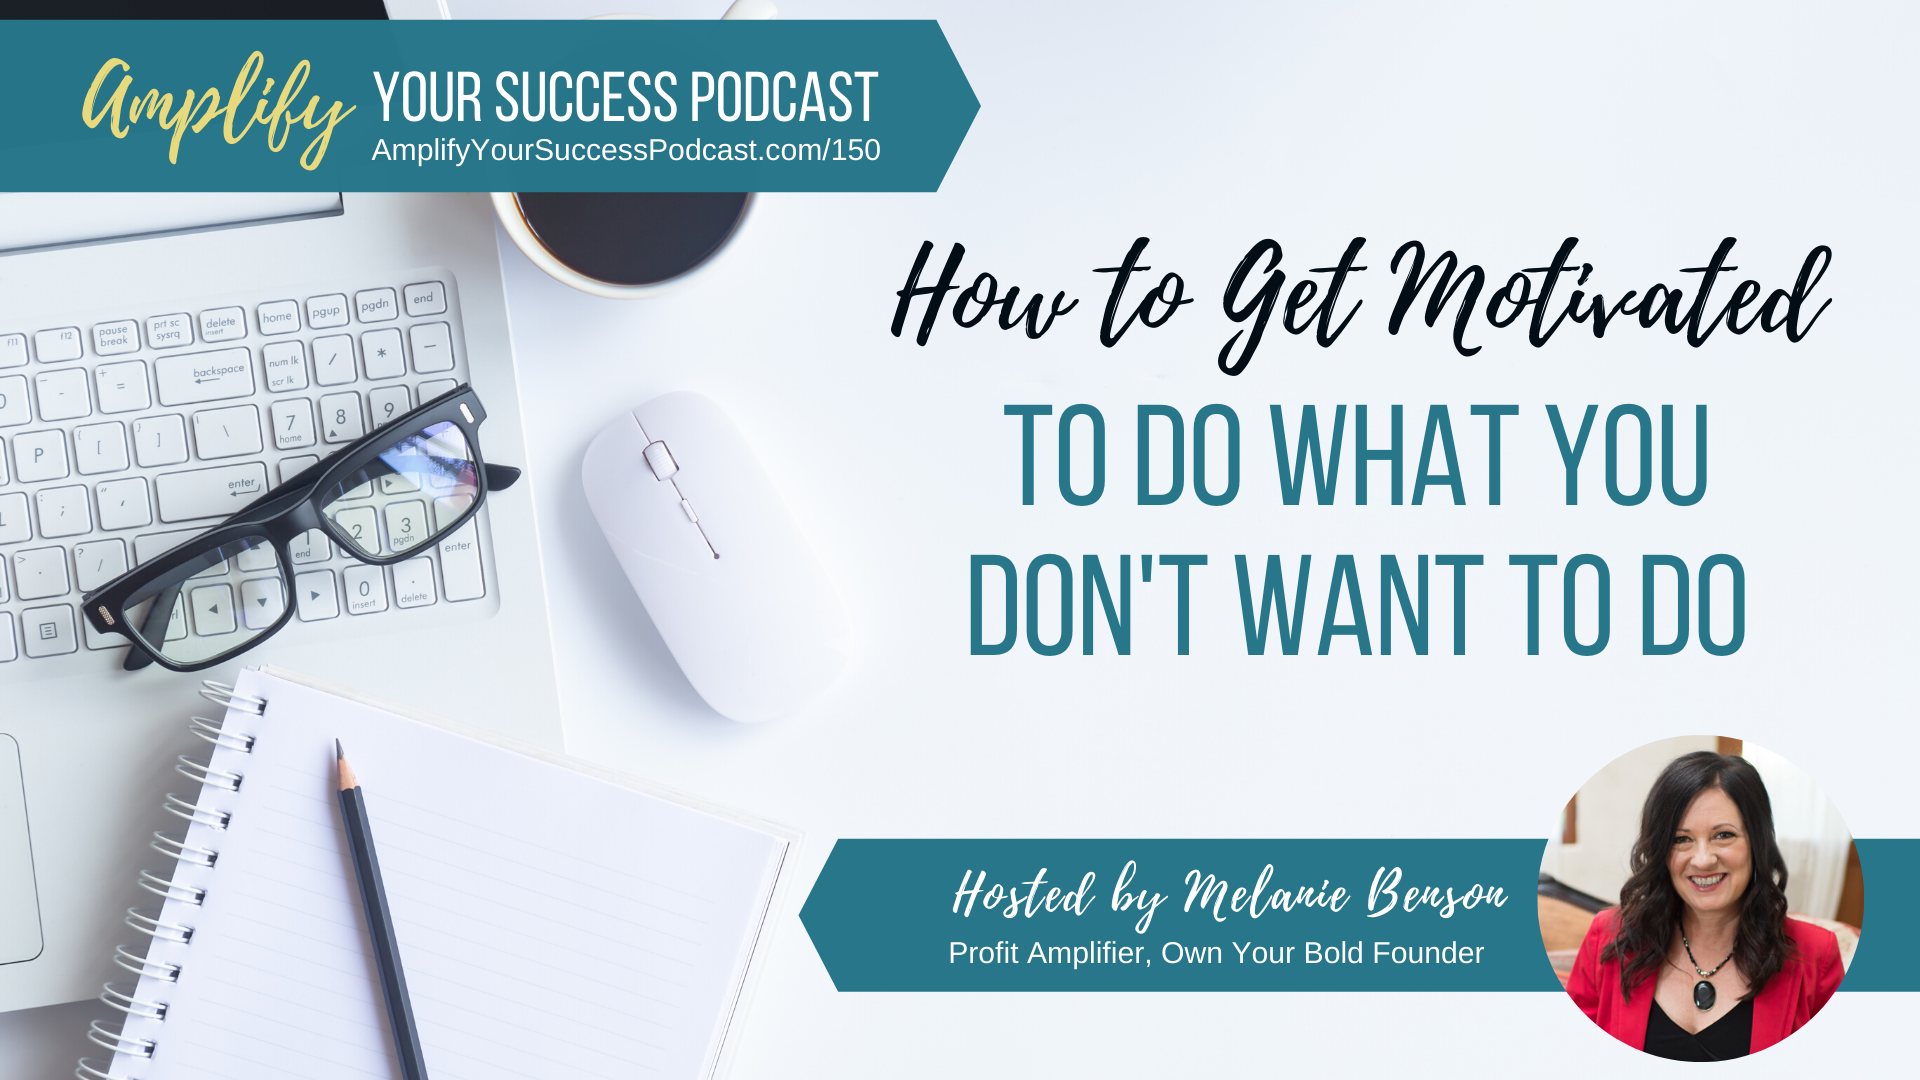 How to Get Motivated to Do What You Don't Want To Do on Amplify Your Success Podcast Episode 150